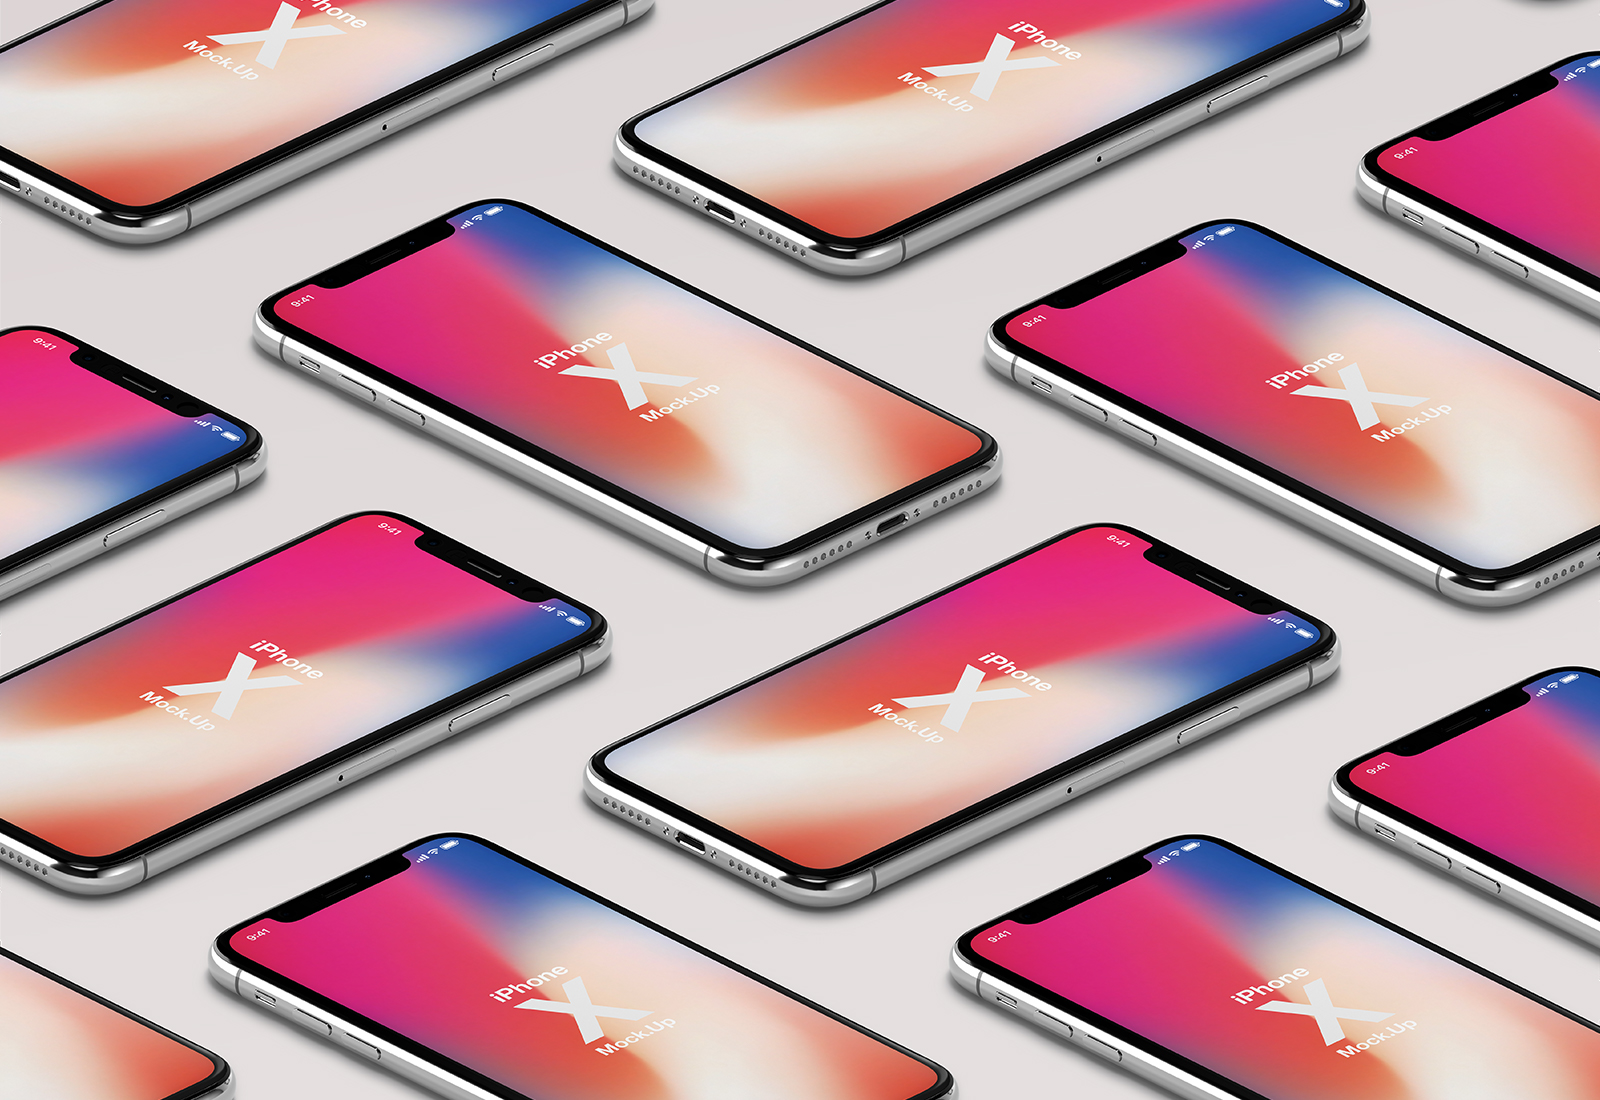 Isometric iPhone X/11 Pro PSD mockup